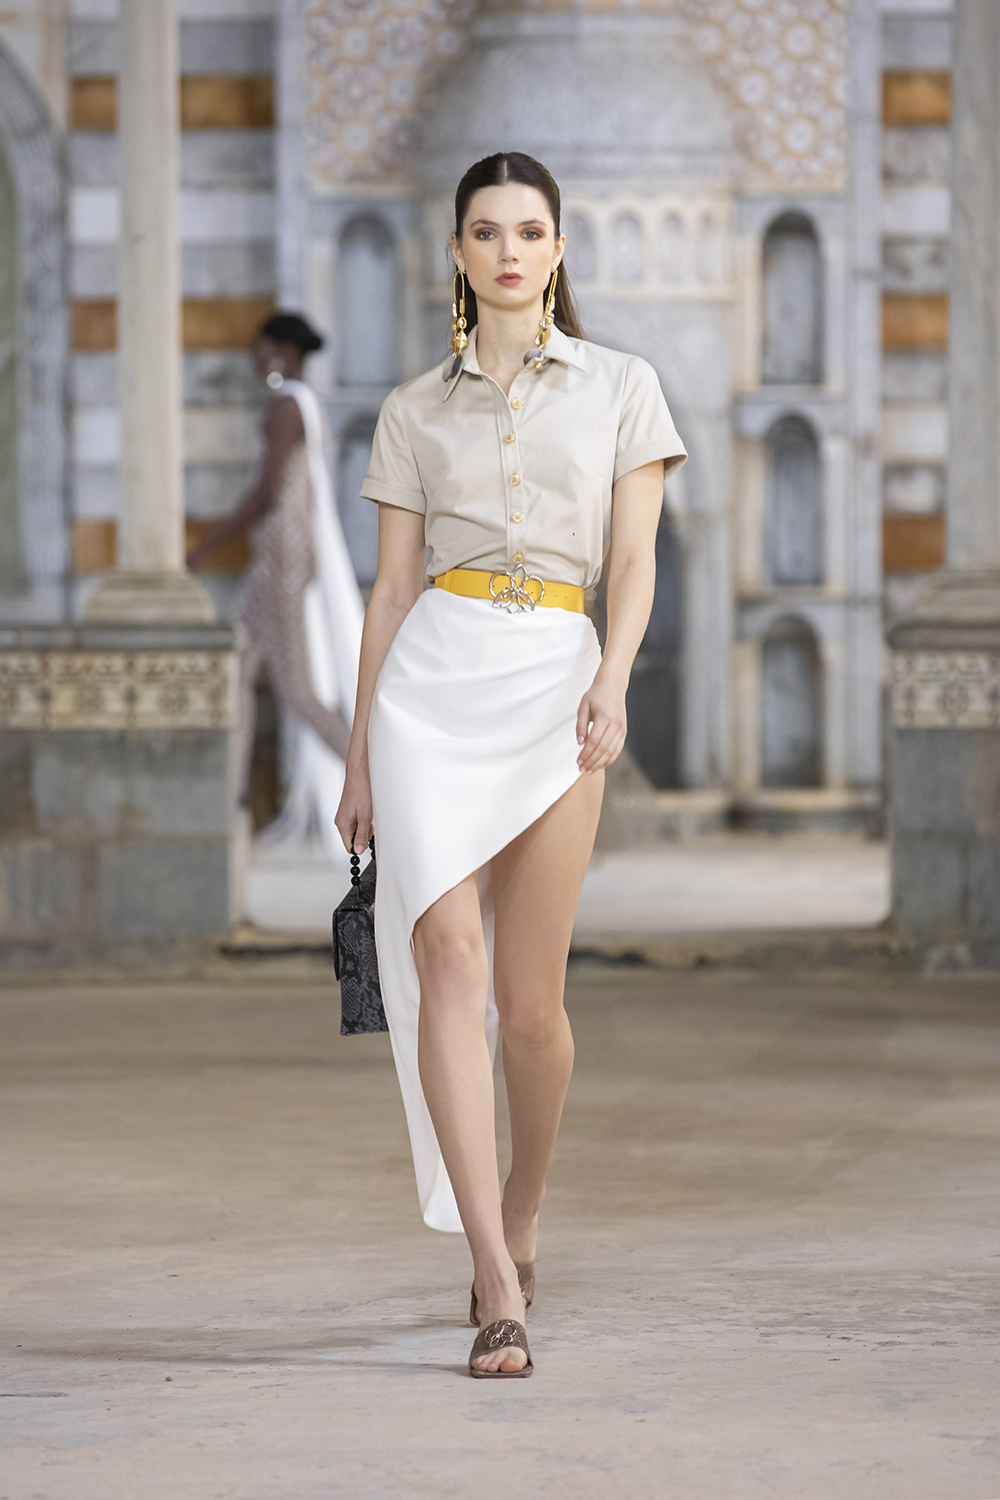 Georges Hobeika SS22 Asymmetrical pencil skirt with crisp collared shirt I DreaminLace.com #fashionstyle